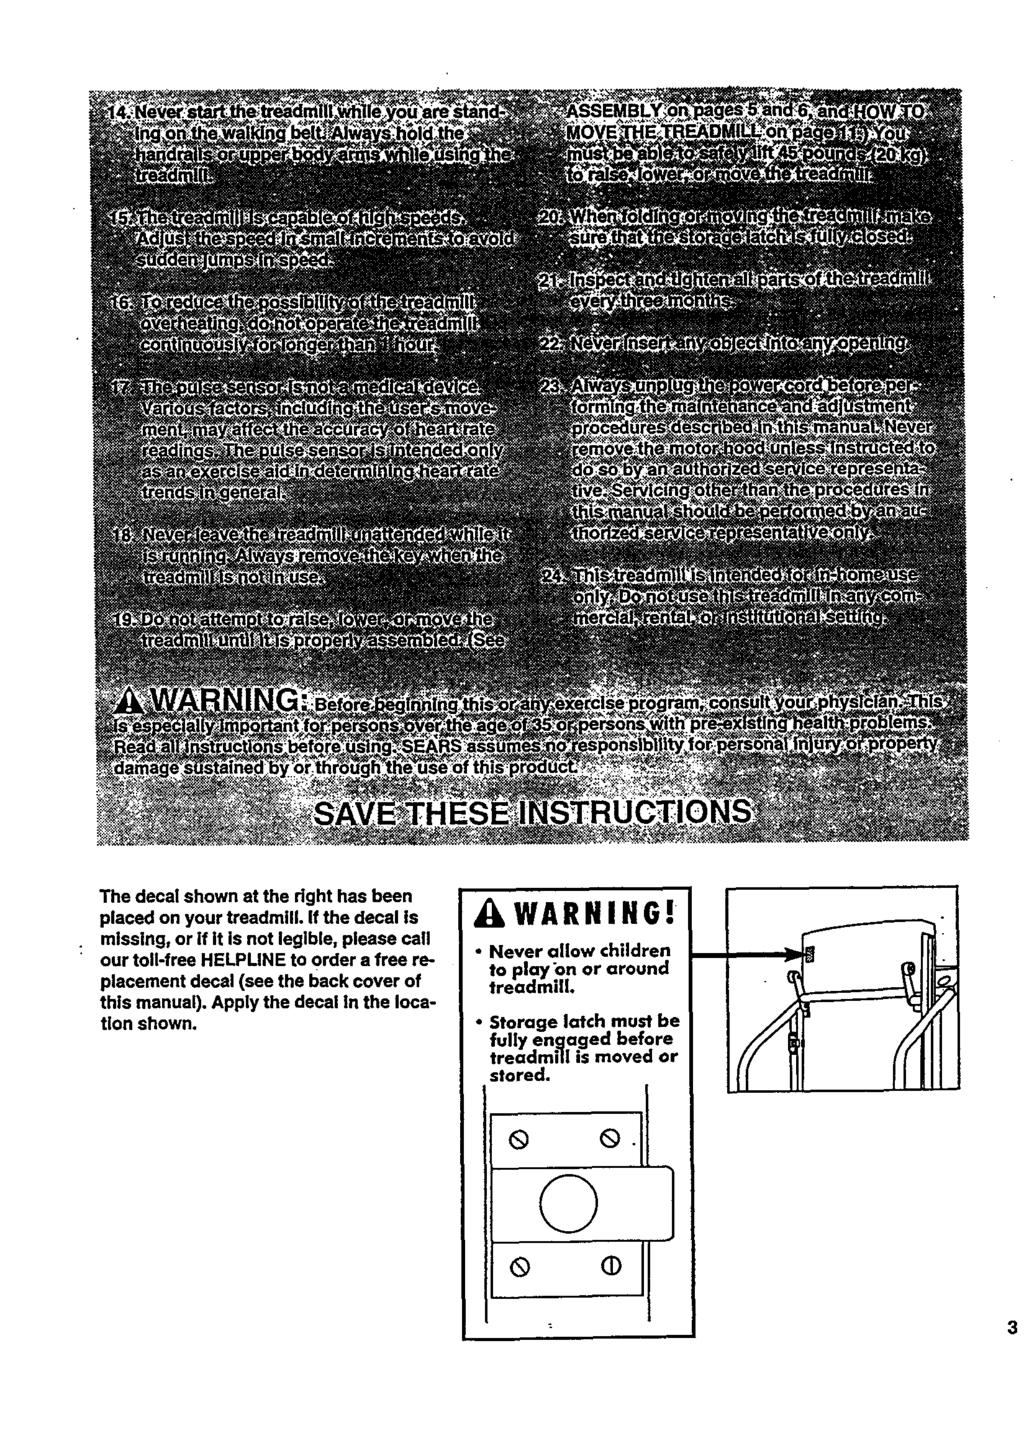 Sw Rs Er A S Proform Users Manual L Mm M Model Treadmill Wiring Diagram The Decal Shown At Right Has Been Placed On Your